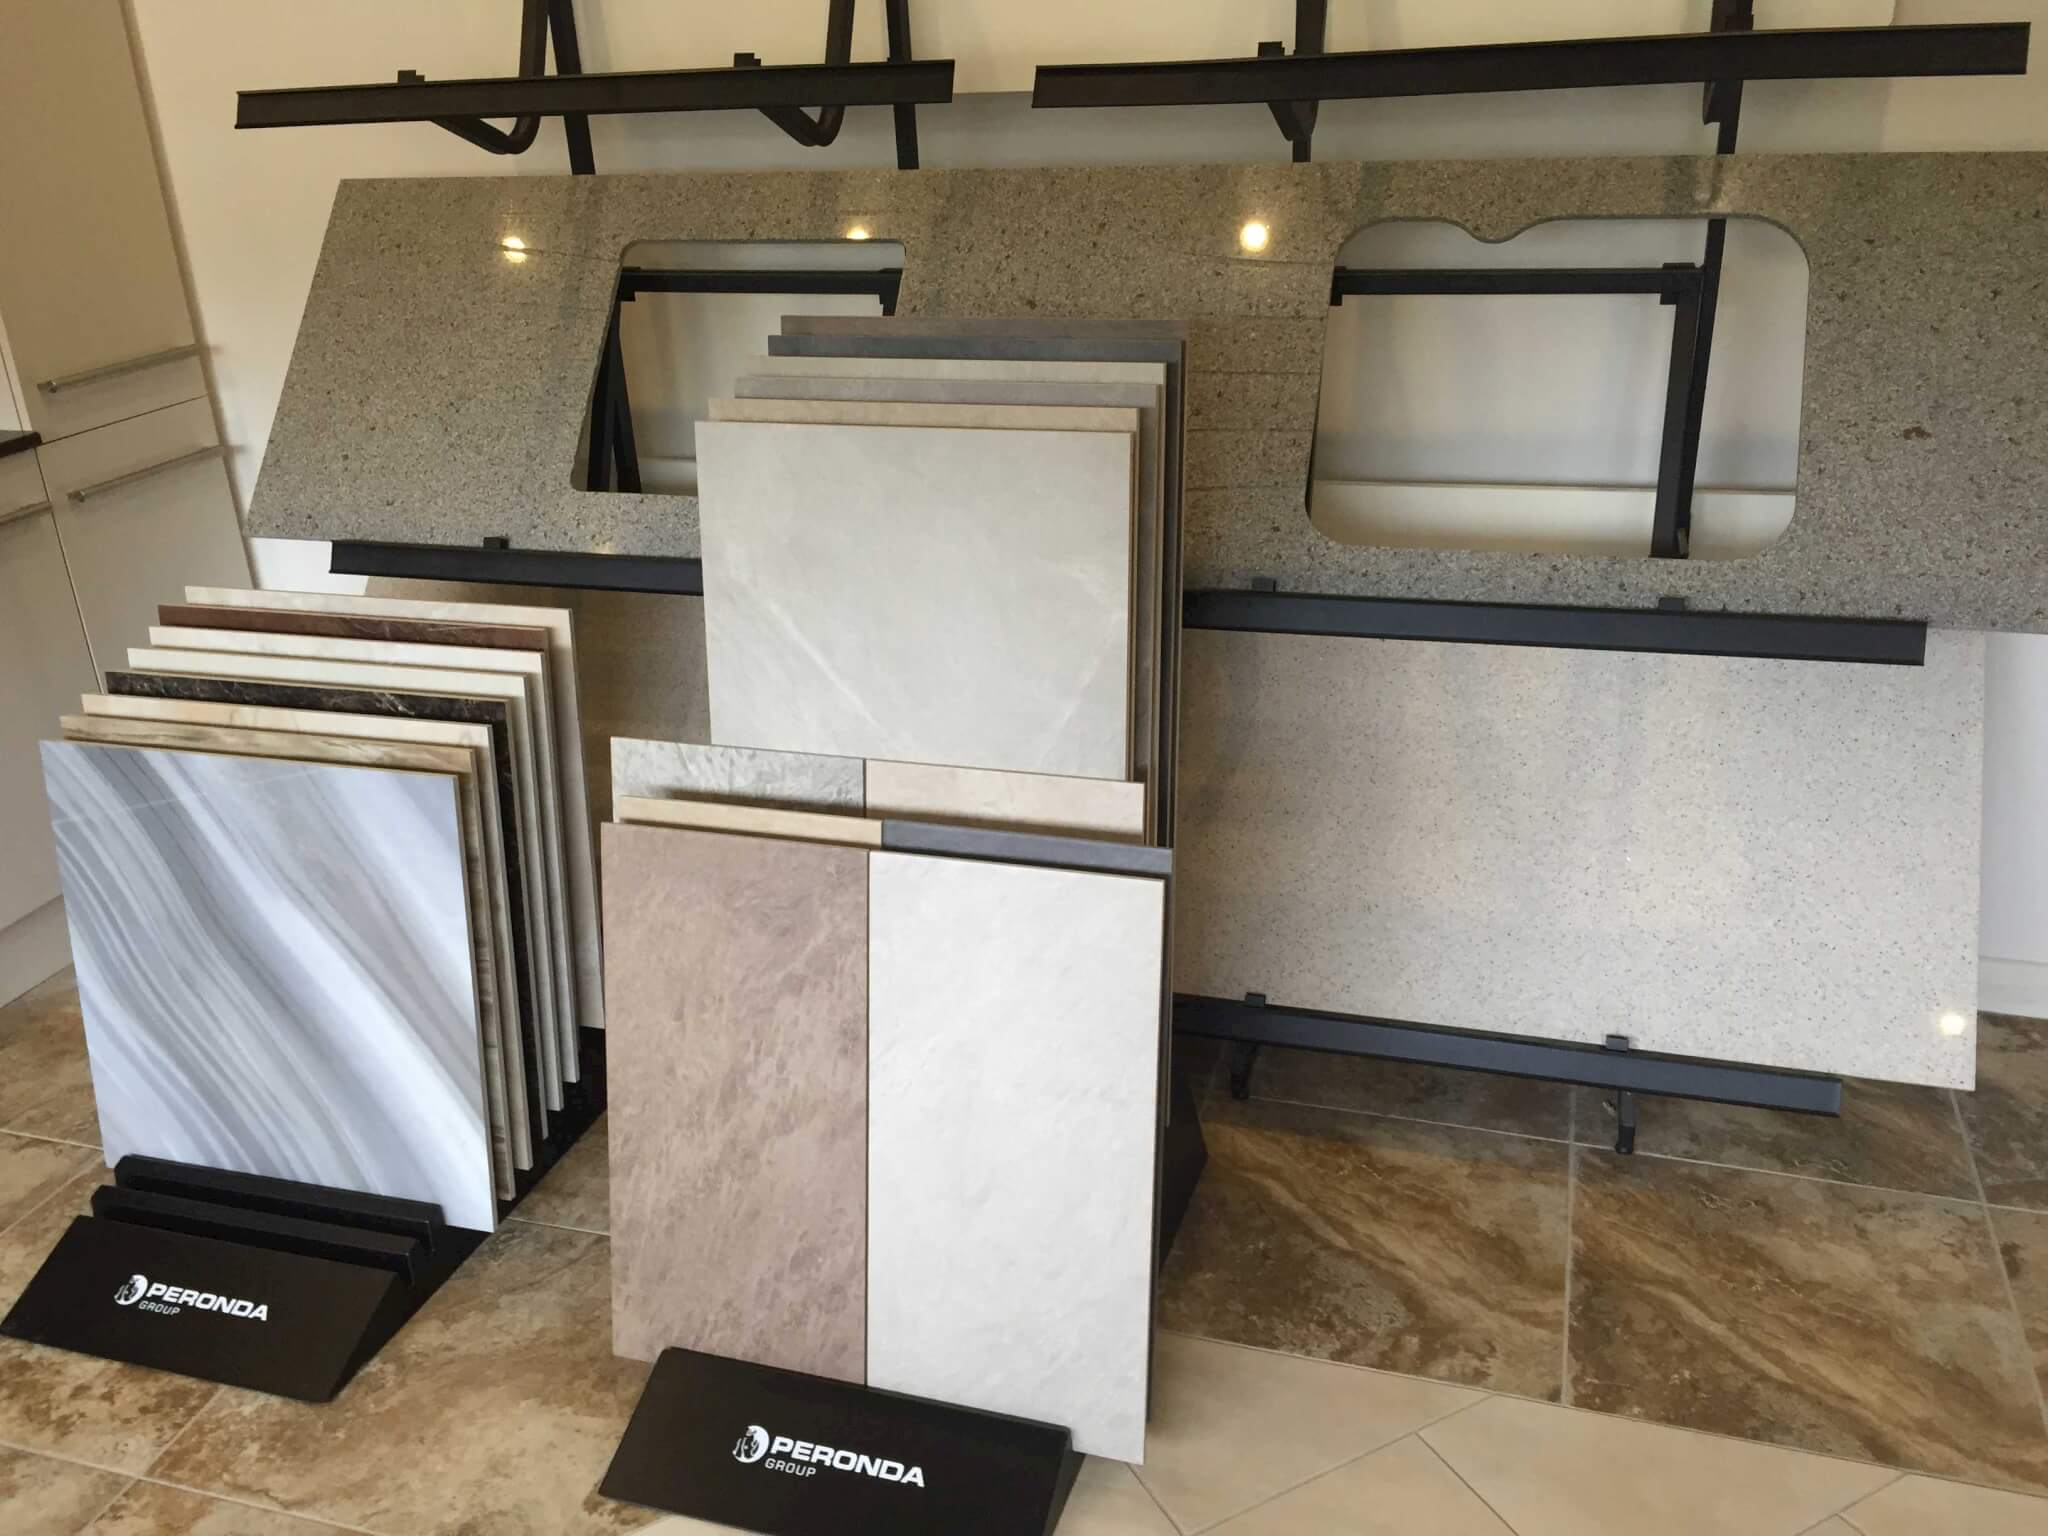 Tiles-and-worktop-cut-out-showroom-diaplay